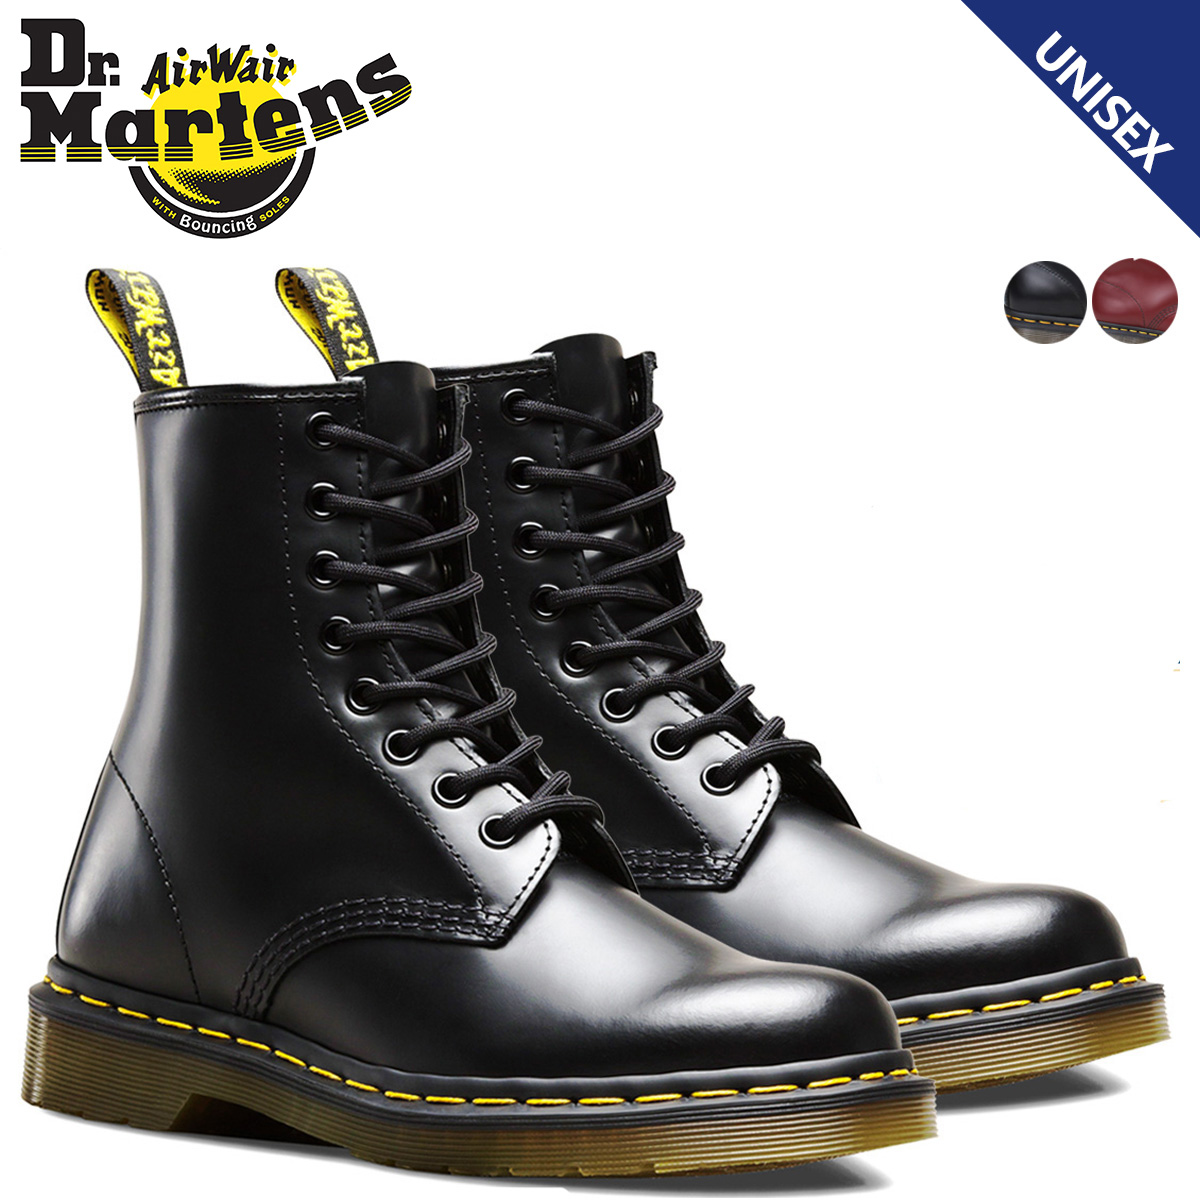 a8b5fb2aca9f «Reserved goods» «10   22 around stock» Dr. Martens Dr.Martens 1460 8 hole  boots 11822006 11822600 MATERIAL UPDATES leather men women. «